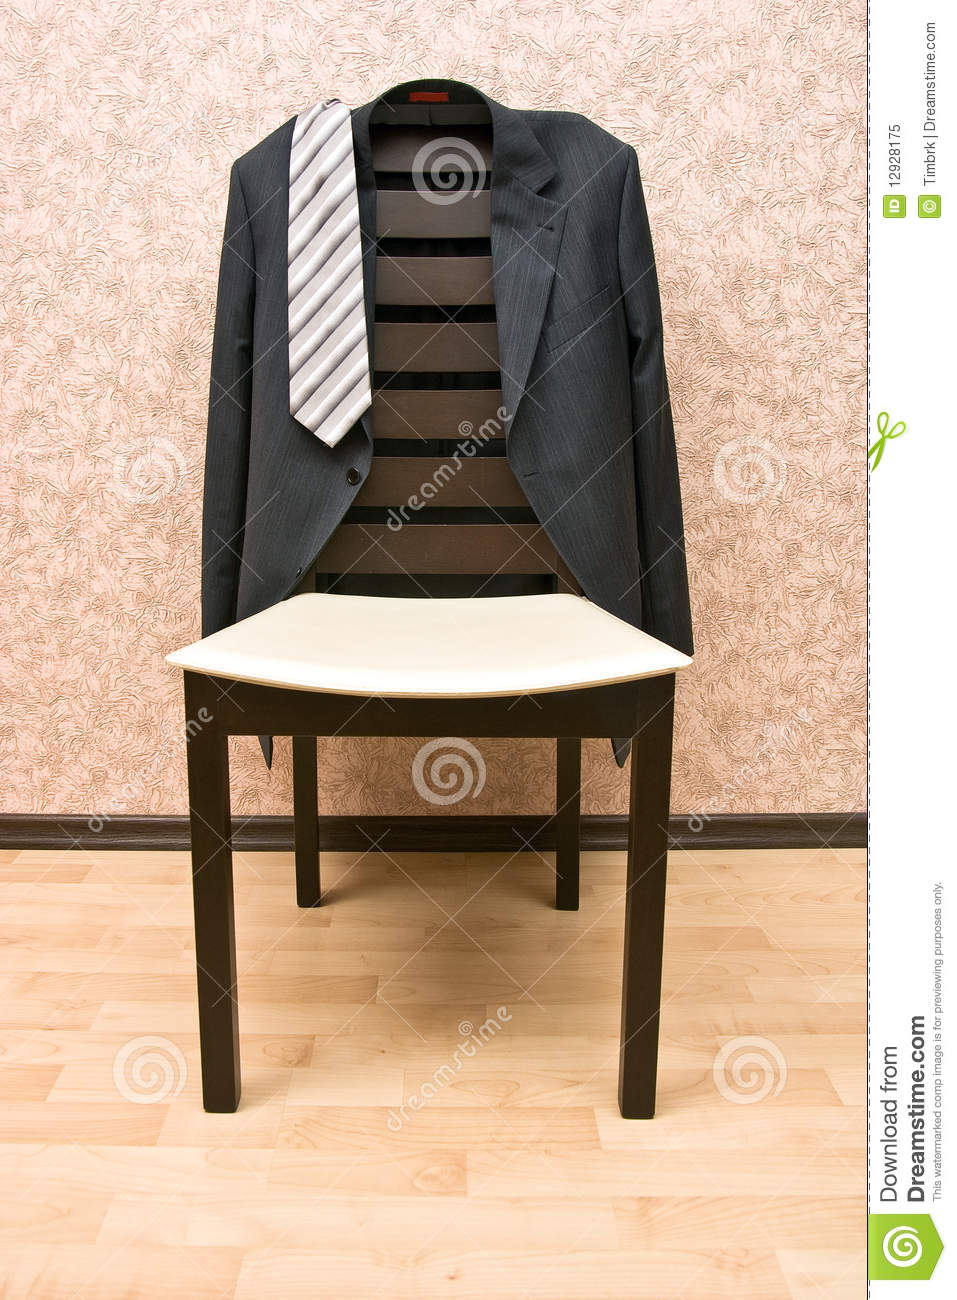 Jacket And Chair Stock Image Image Of Brown Grey